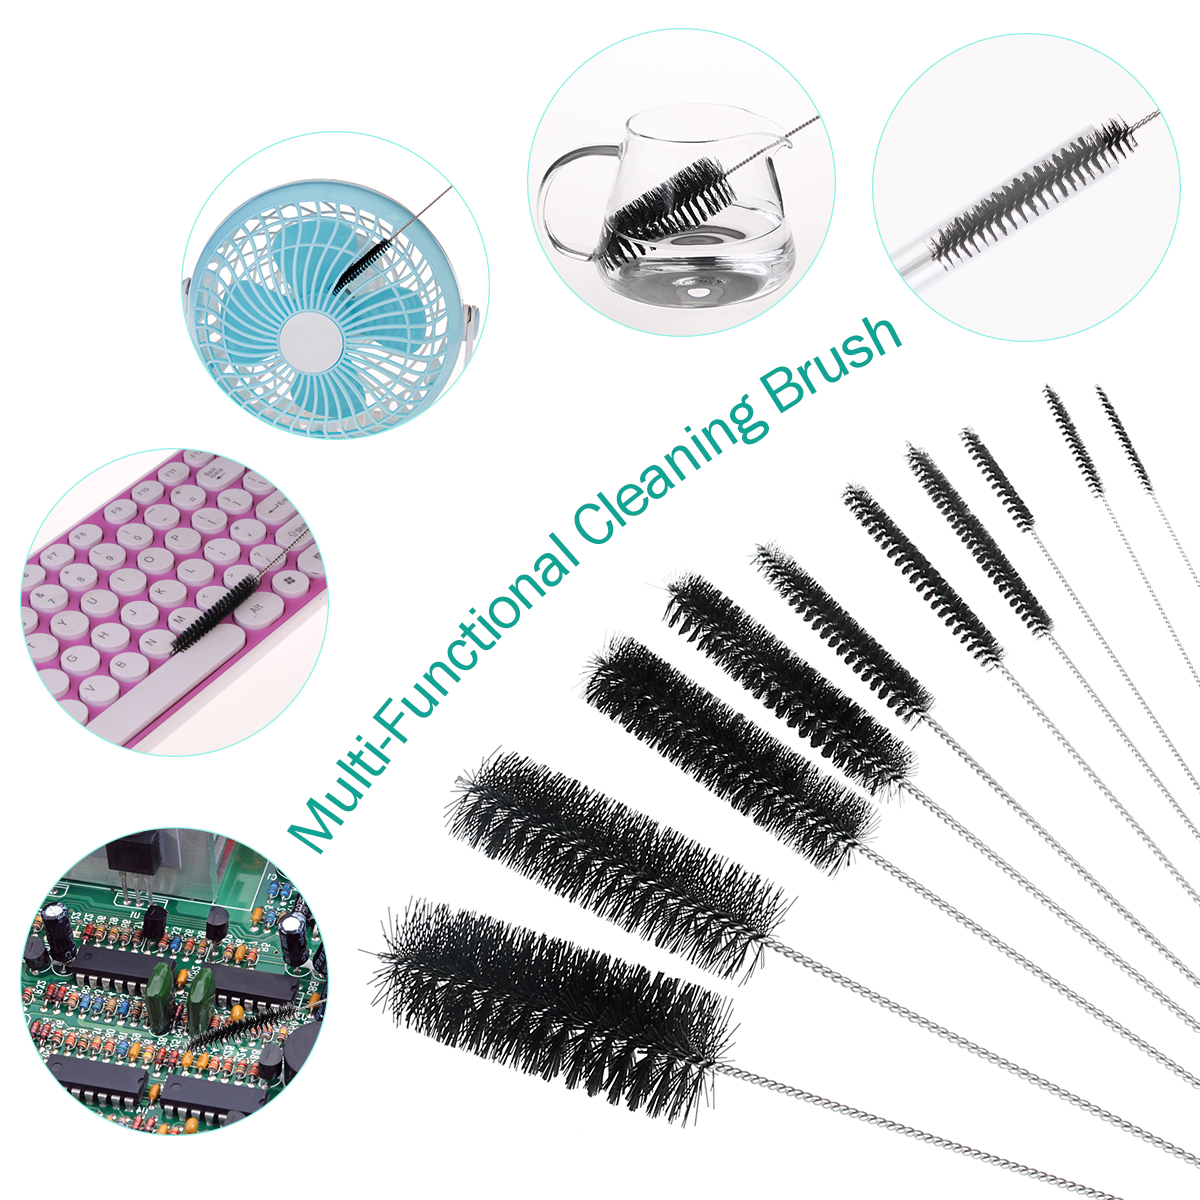 10pcs Nylon Tube Brushes Straw Set For Car Air Condition Drinking Straws / Glasses / Keyboards / Jewelry Cleaning Brushes Tool